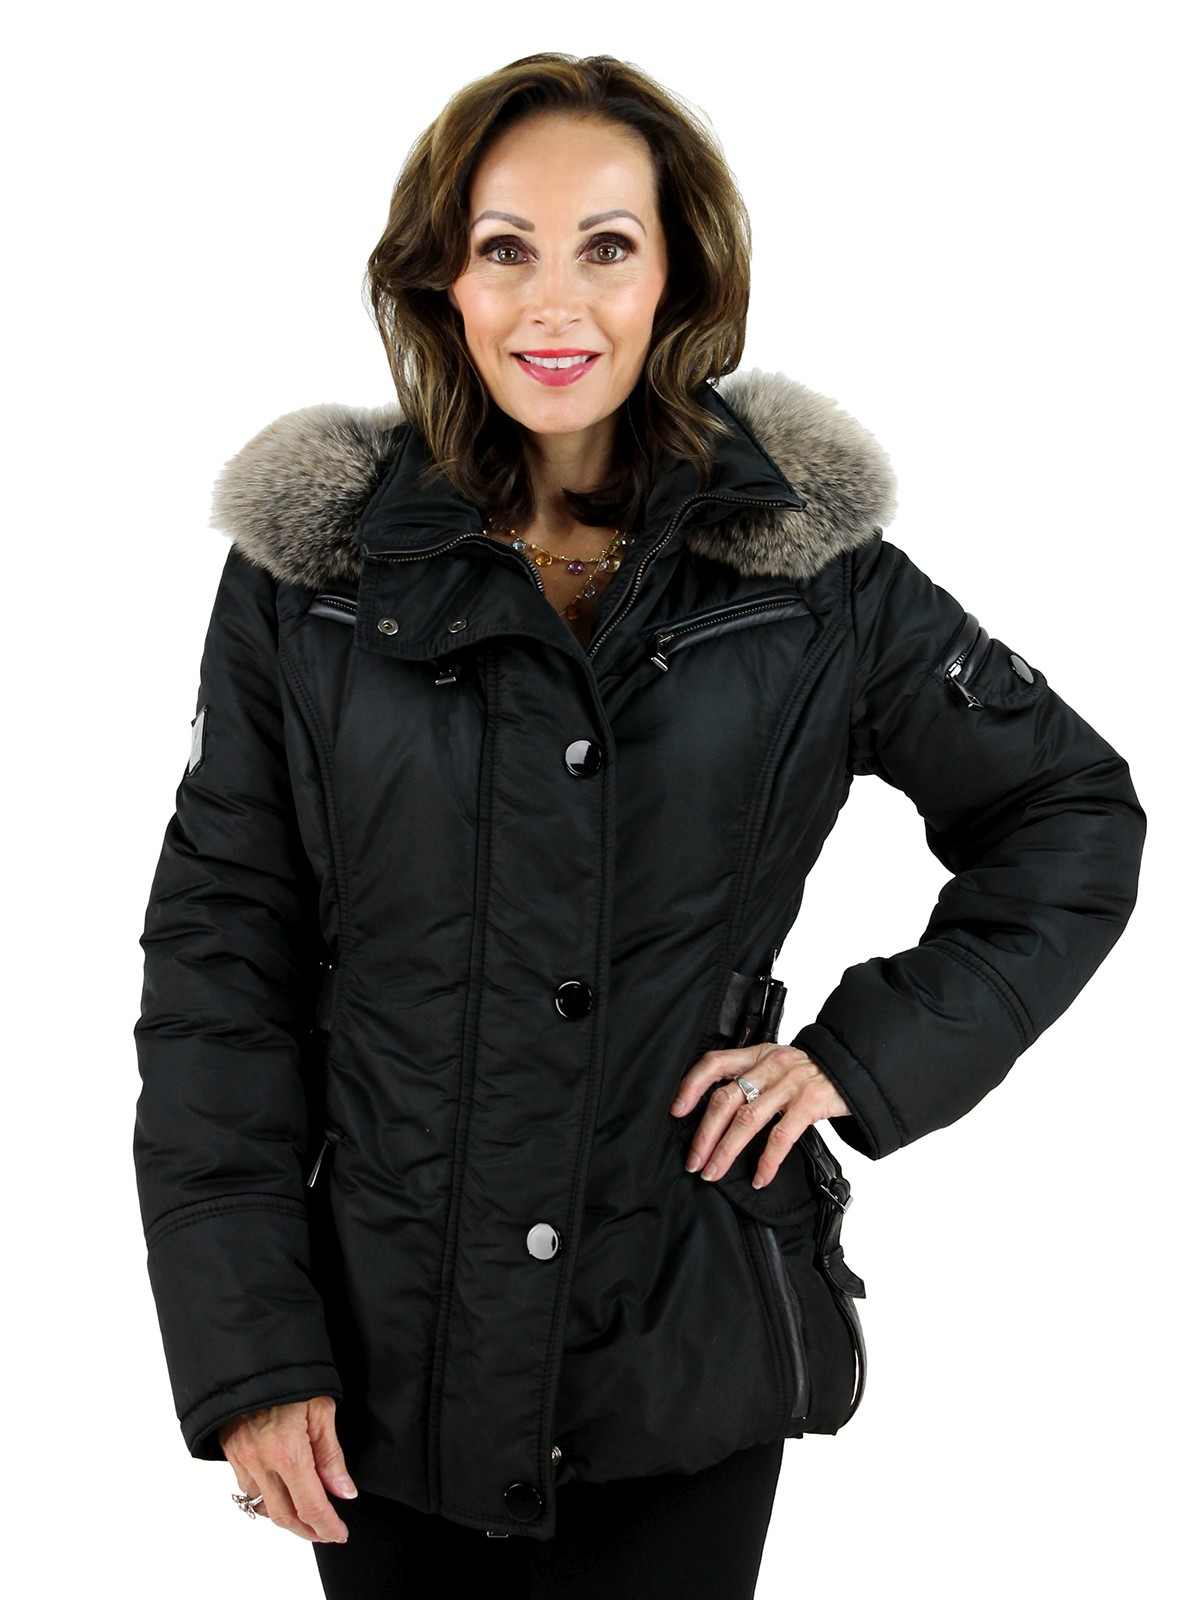 Gorski Woman's Italian Black Apres-Ski Jacket with Fox Trimmed Hood and Leather Details